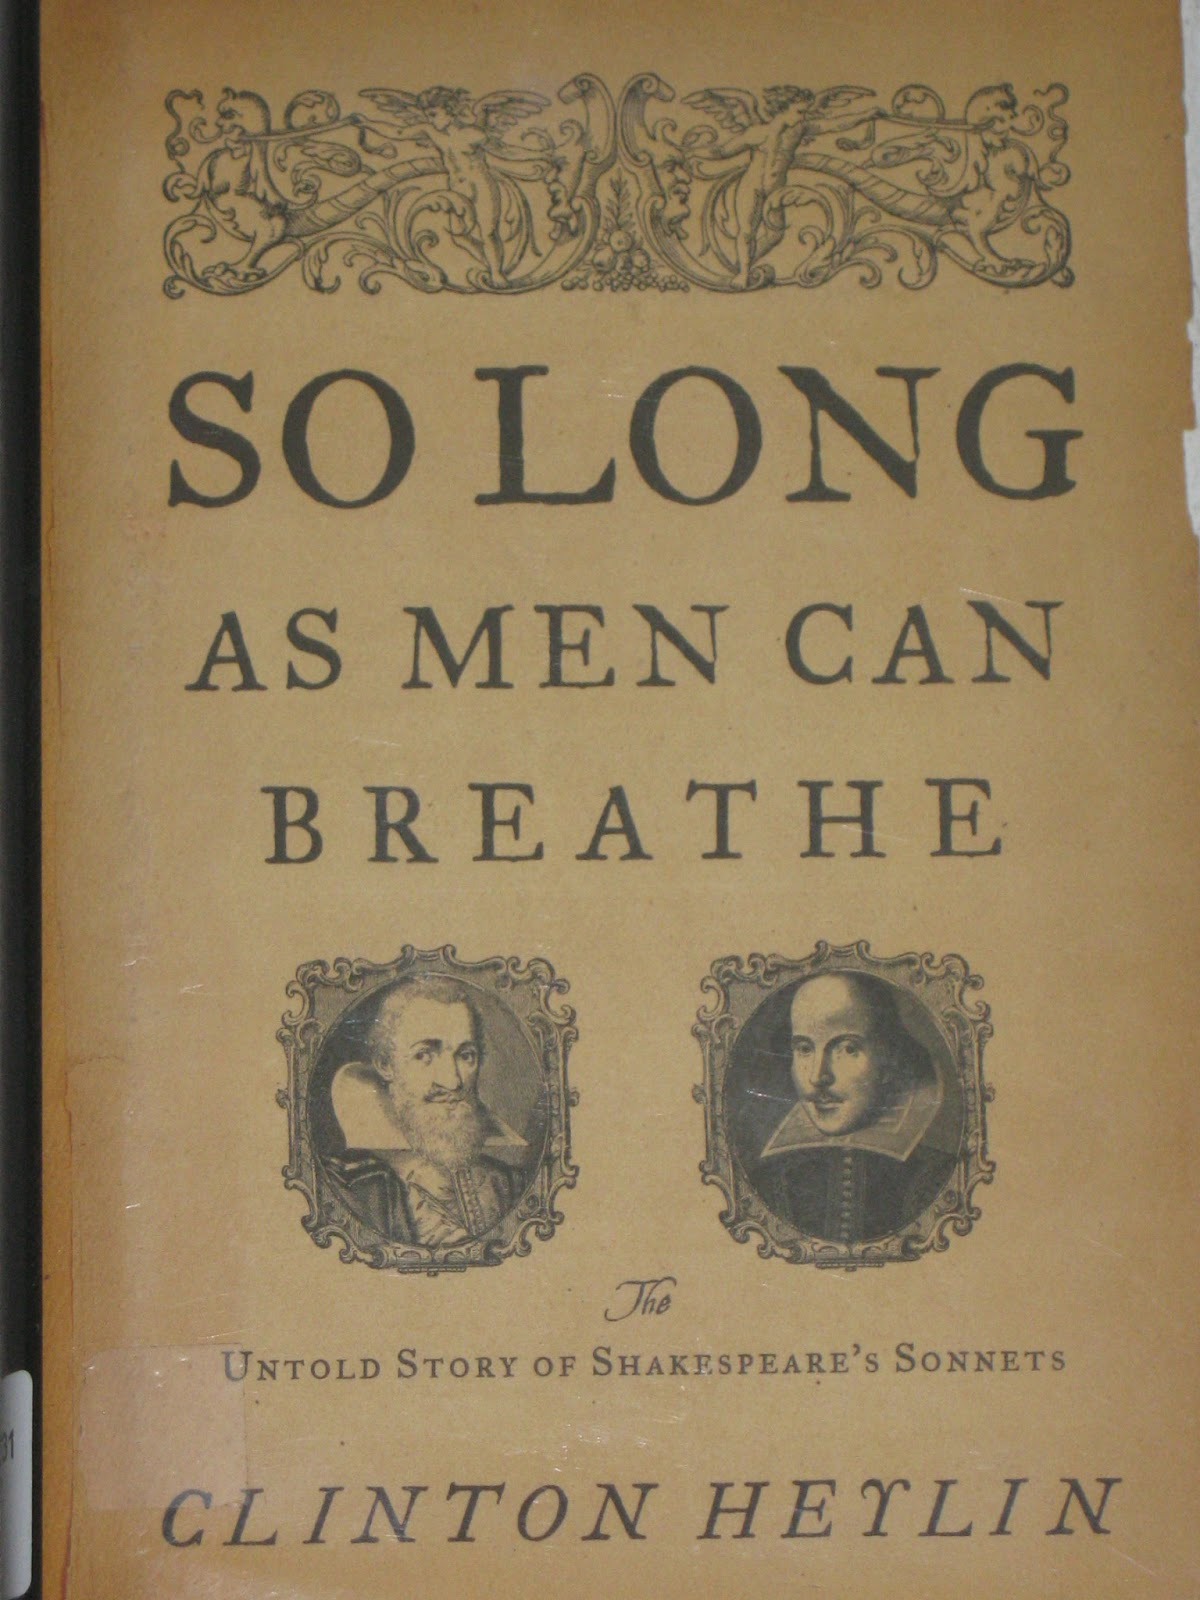 mostly shakespeare but also some occasional nonsense so long as men can breathe the untold story of shakespeare s sonnets by clinton heylin in this book heylin argues that shakespeare did not authorize the